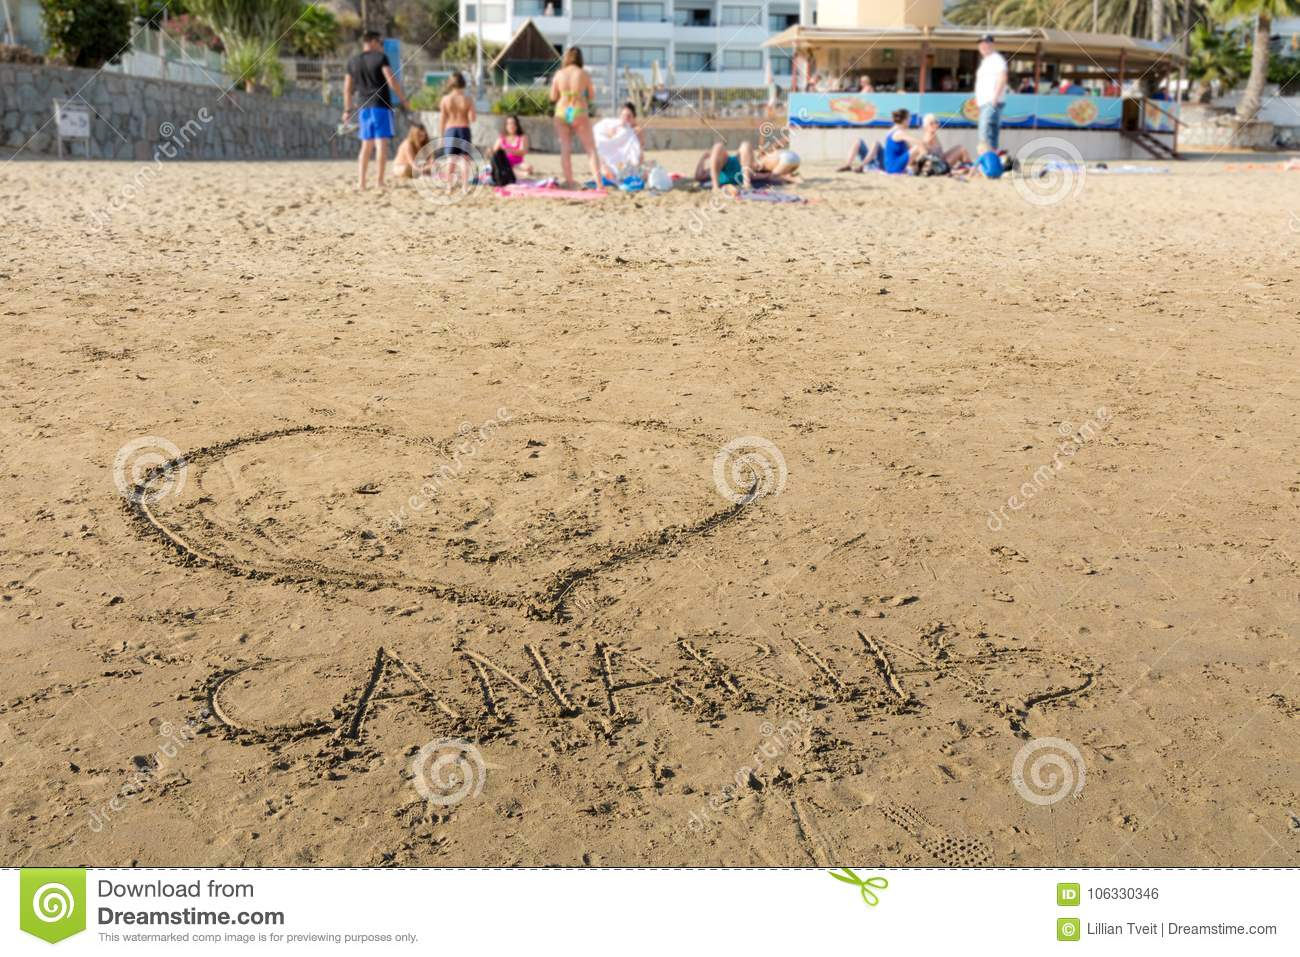 Drawings in the sand at Puerto Rico Beach in Gran Canaria, Spain. Soft background with people on the beach.